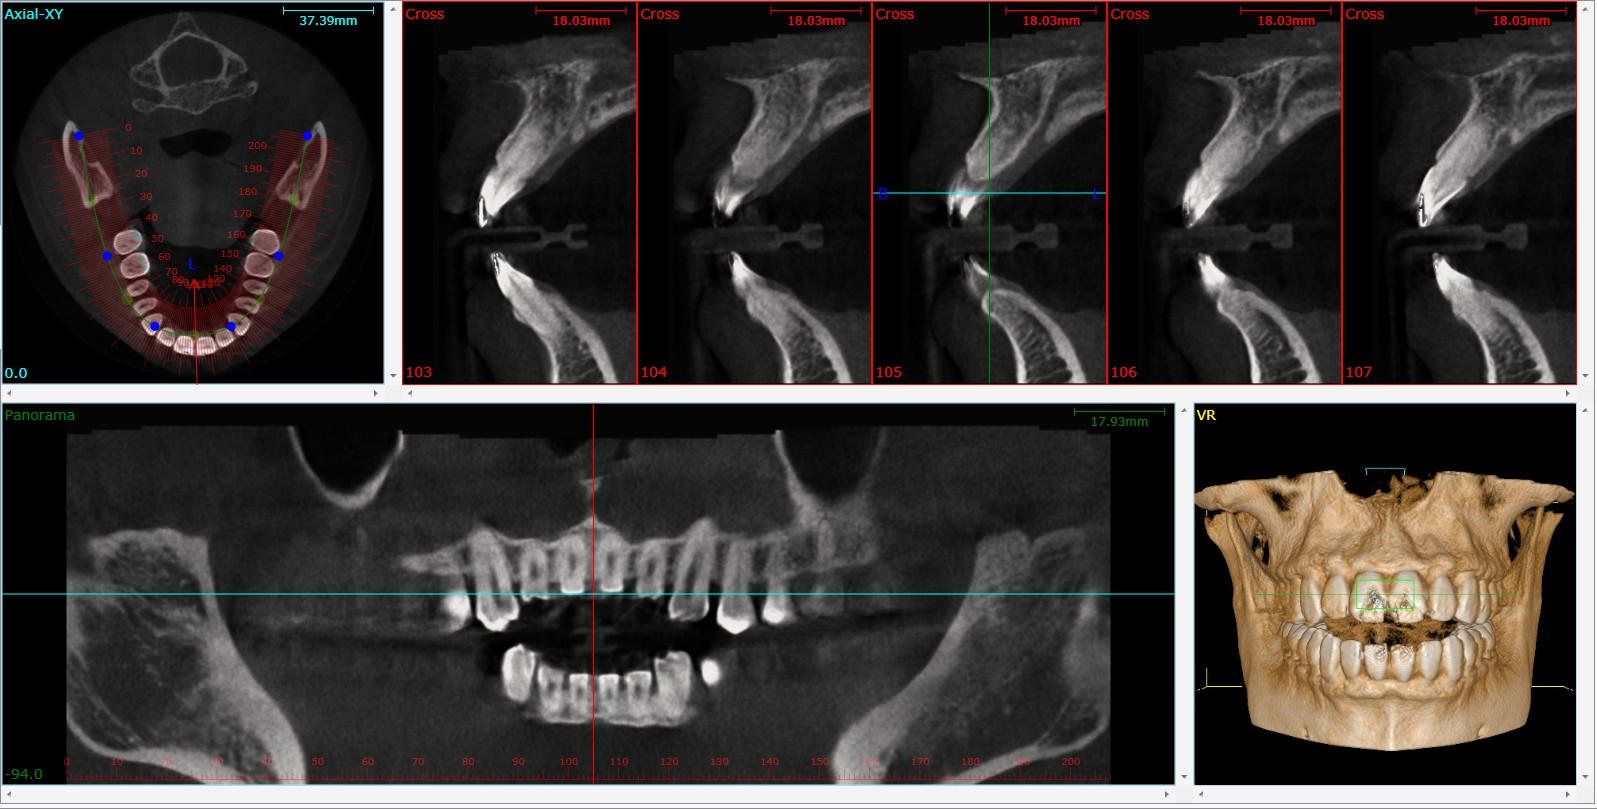 cbct_image_03.png